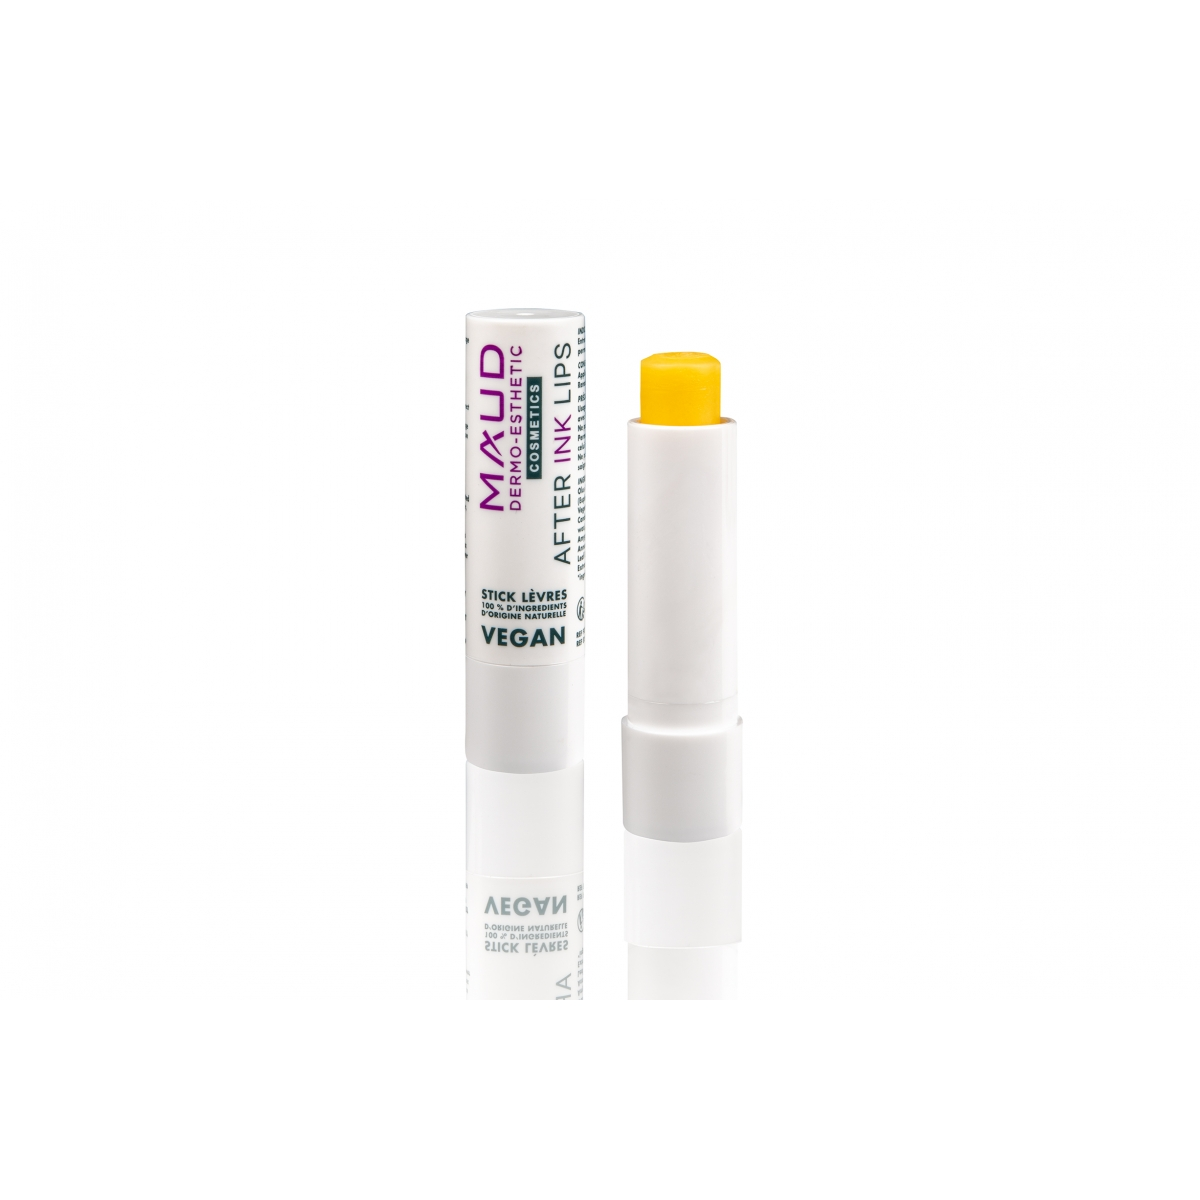 SOINS DERMOPIGMENTATION - MAUD COSMETICS - STICK CICATRISANT DERMOPIGMENTATION LEVRES AFTER INK LIPS VEGAN (4 g)